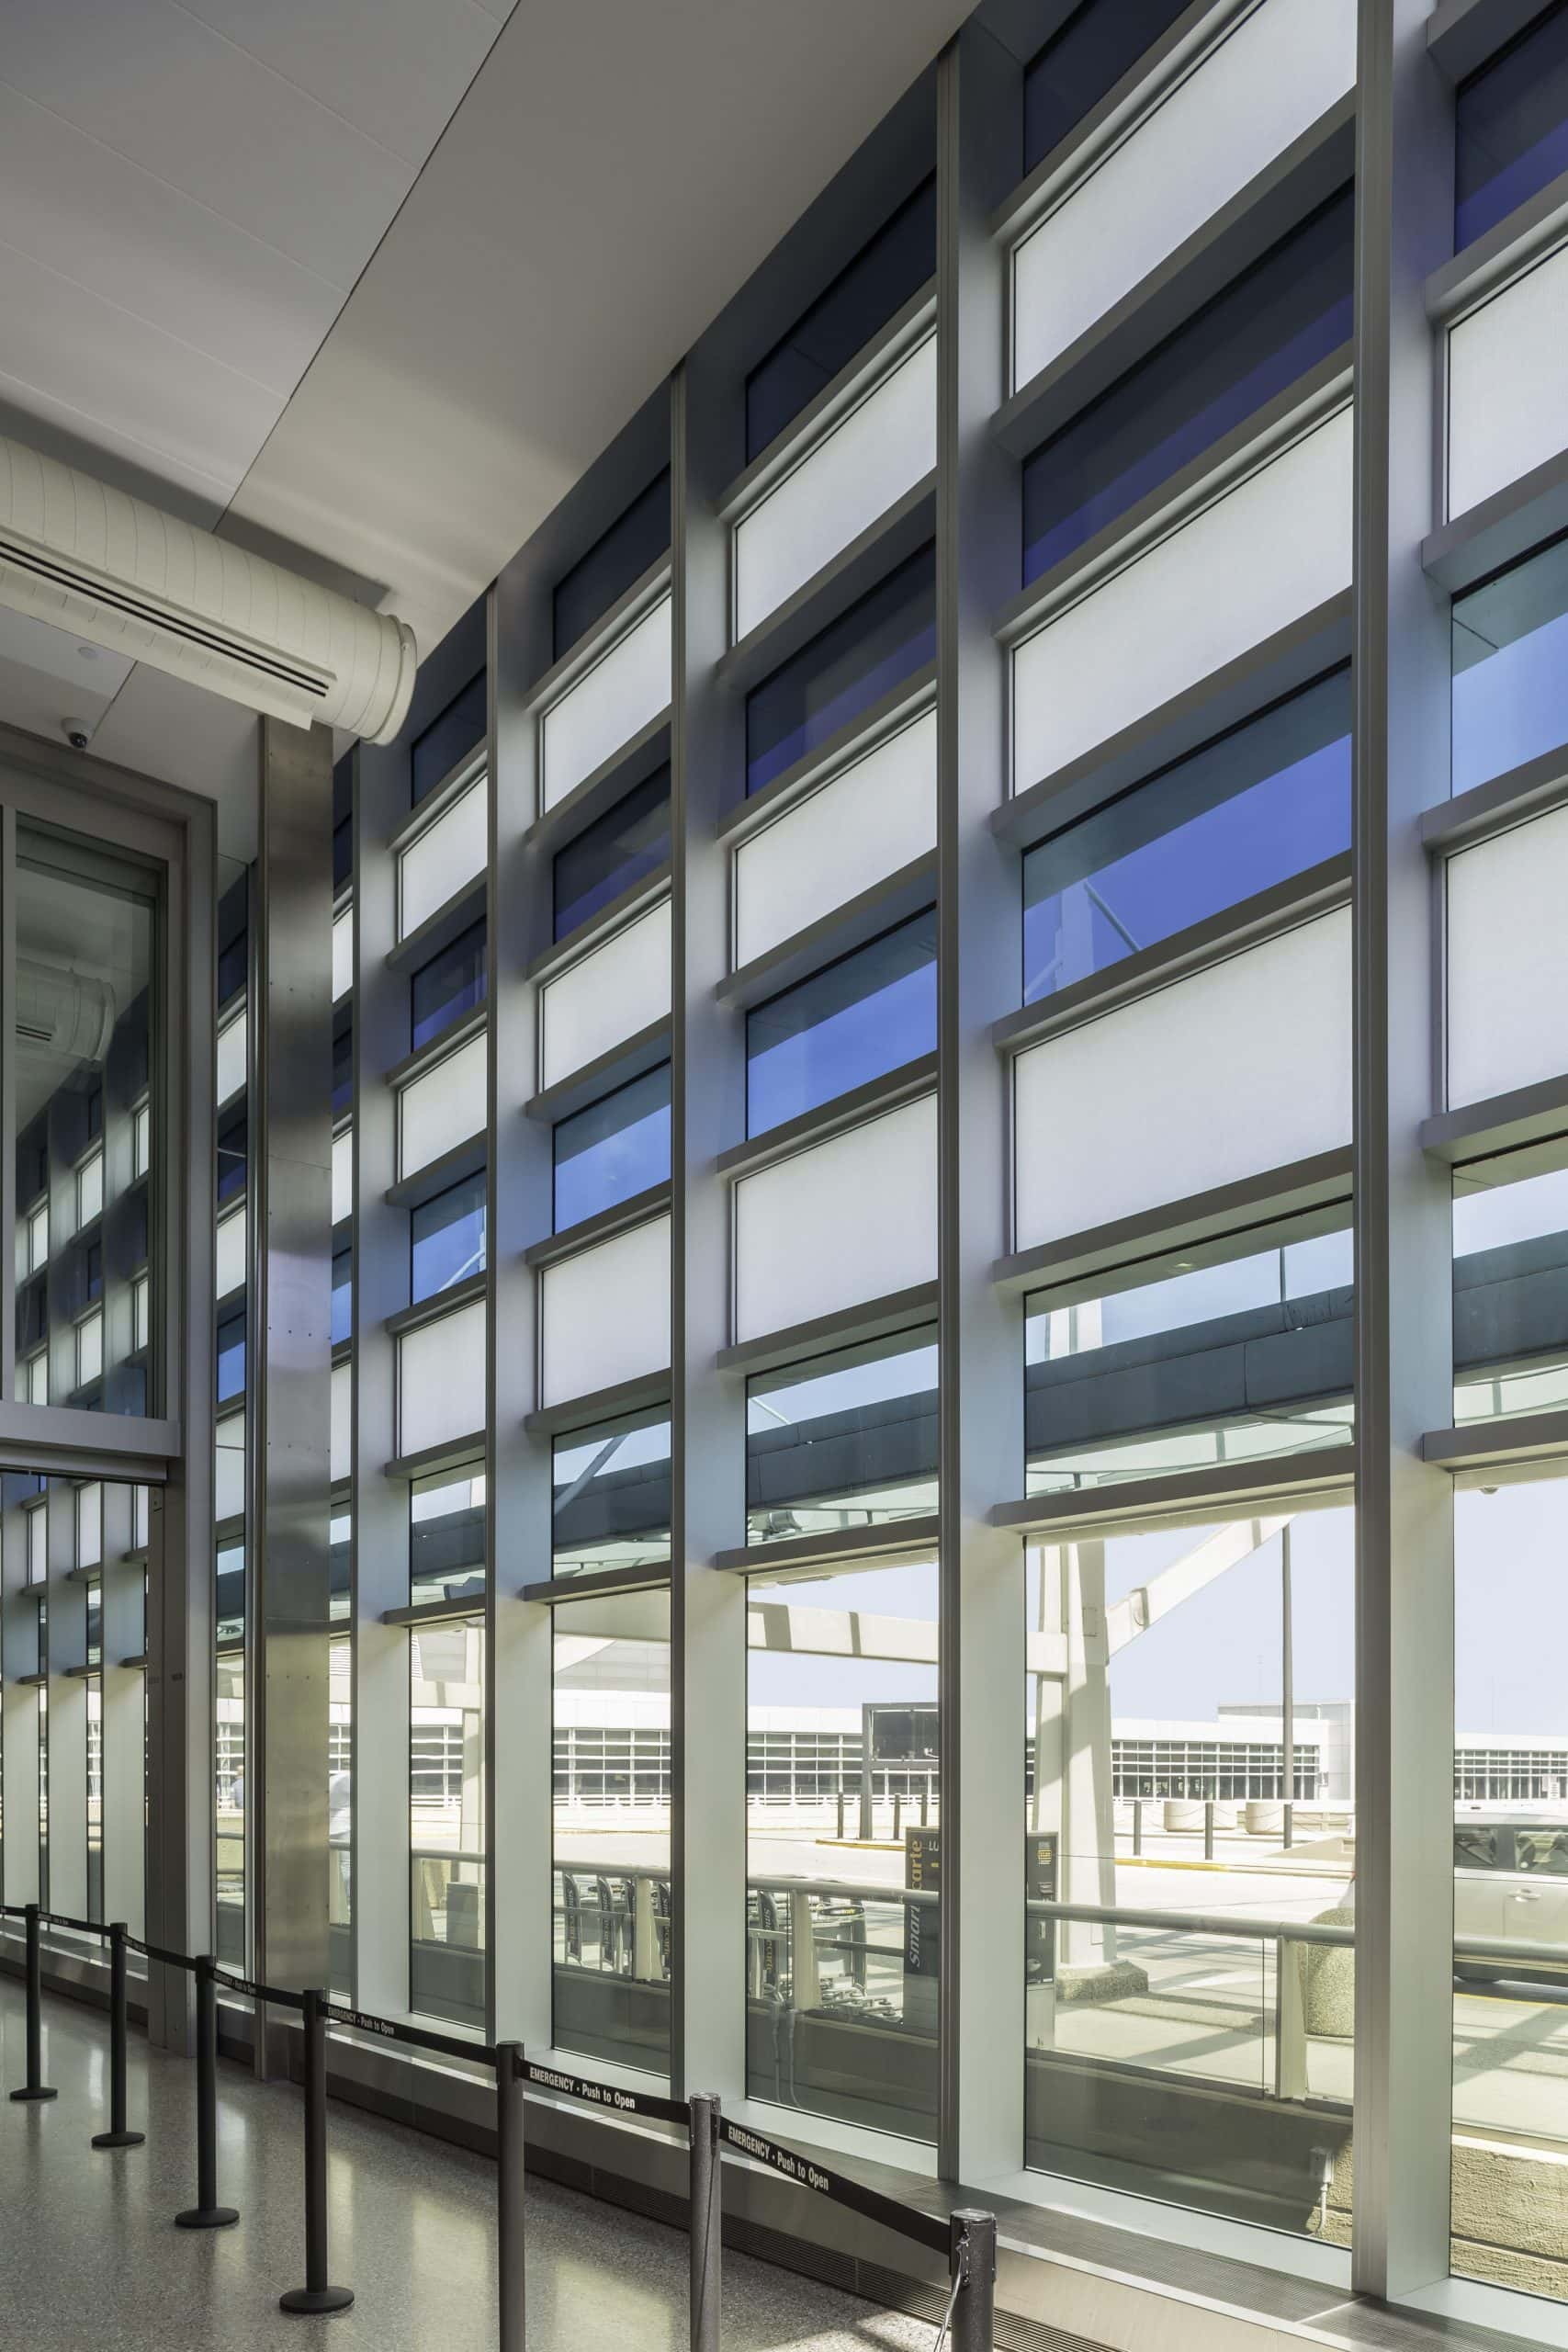 electrochromic glass is a unique and modern solar shading solution perfect for commercial spaces